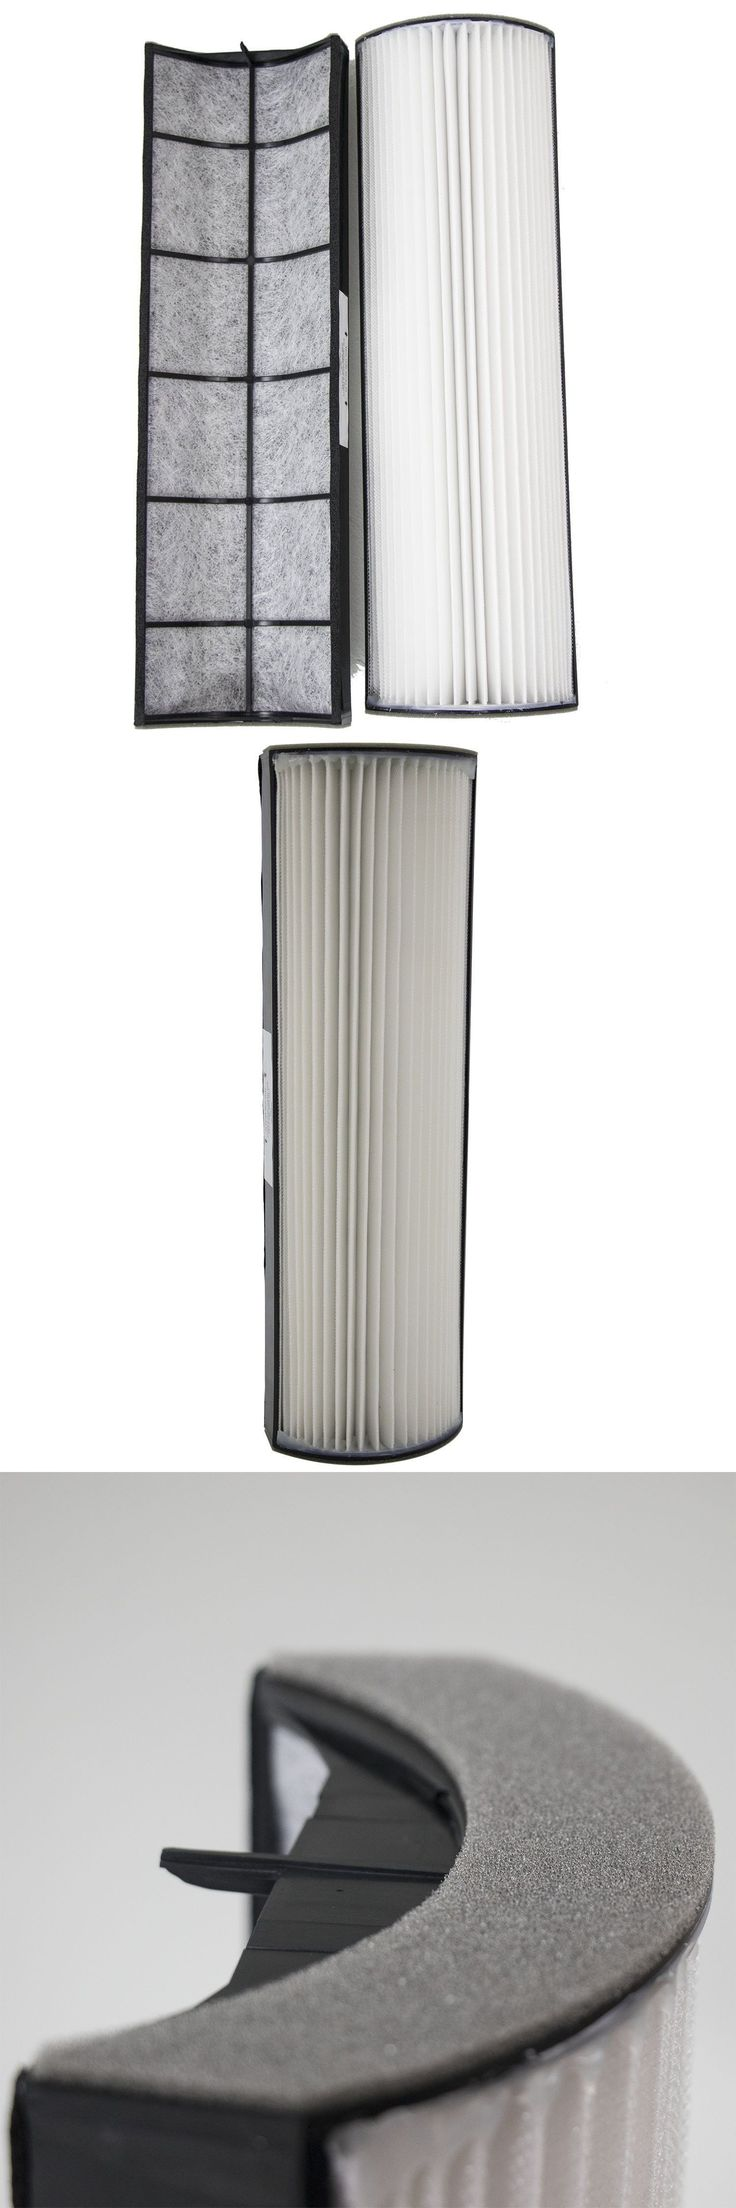 Replacement for Therapure TPP440 Filter (TPP440FL